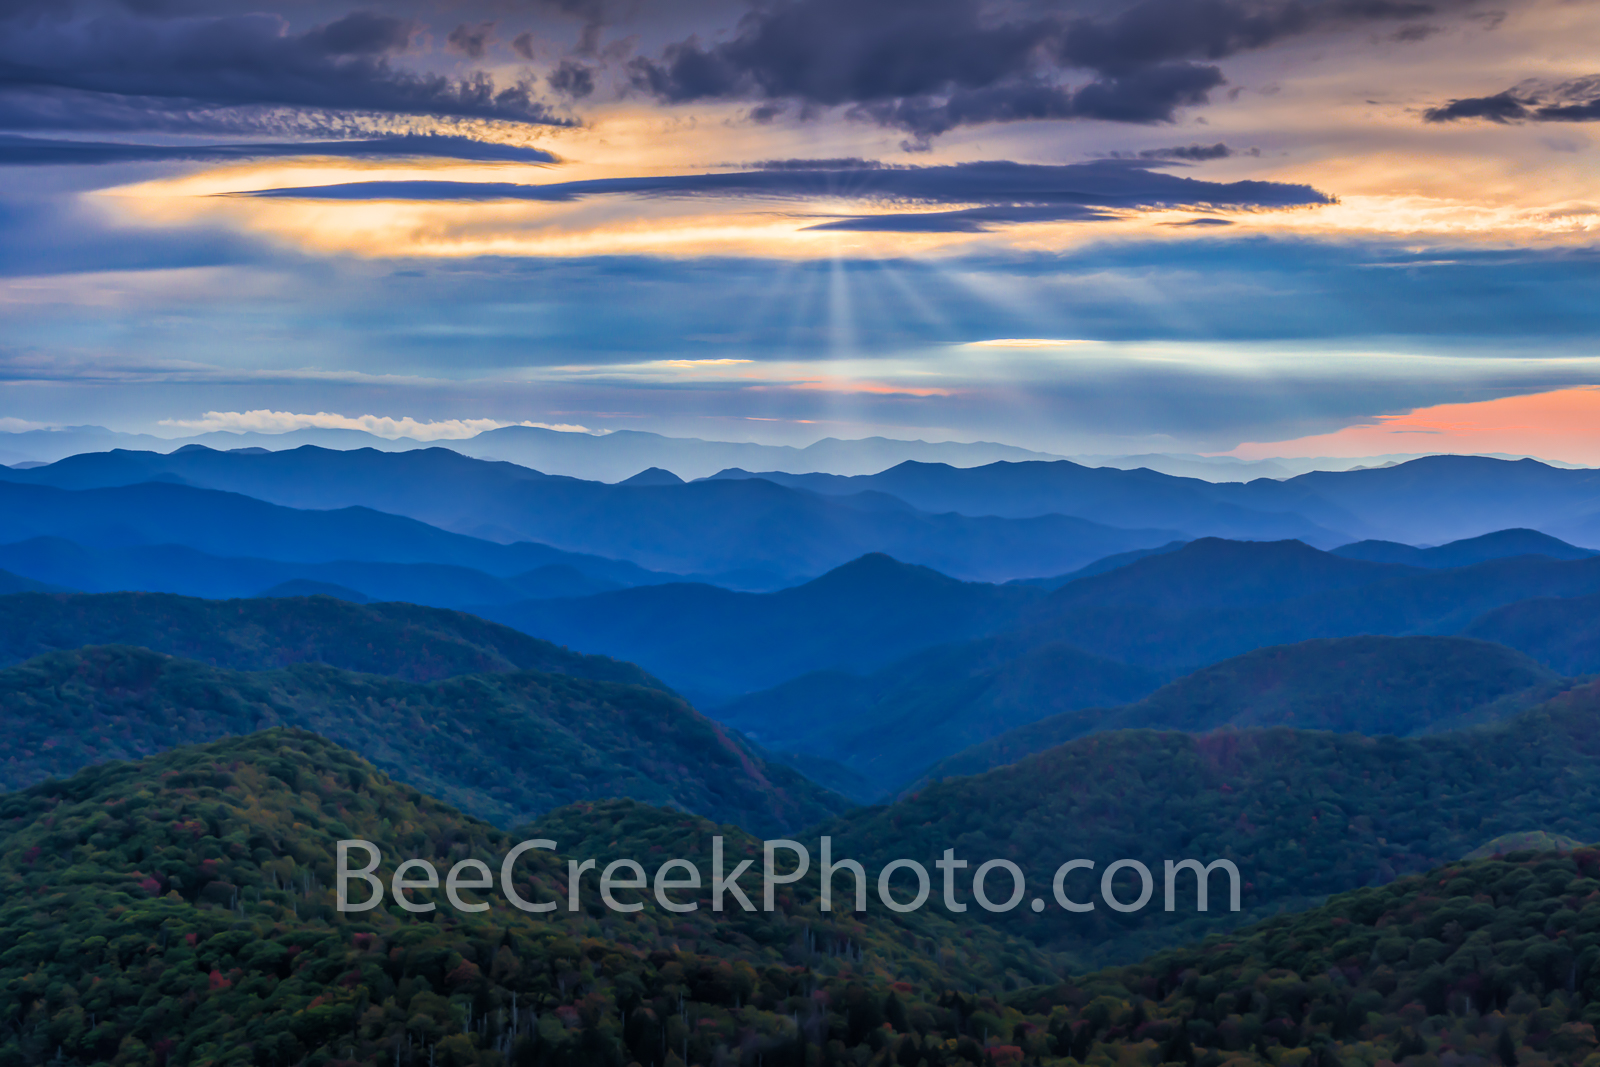 blue ridge, blueridge, blue ridge mountains, smoky mountains, overlook, sunset, color, colors, painterly, orange, blue, purples, yellow, orange, pink, peak, ridges, valley, clouds, moody, nc, north ca, photo